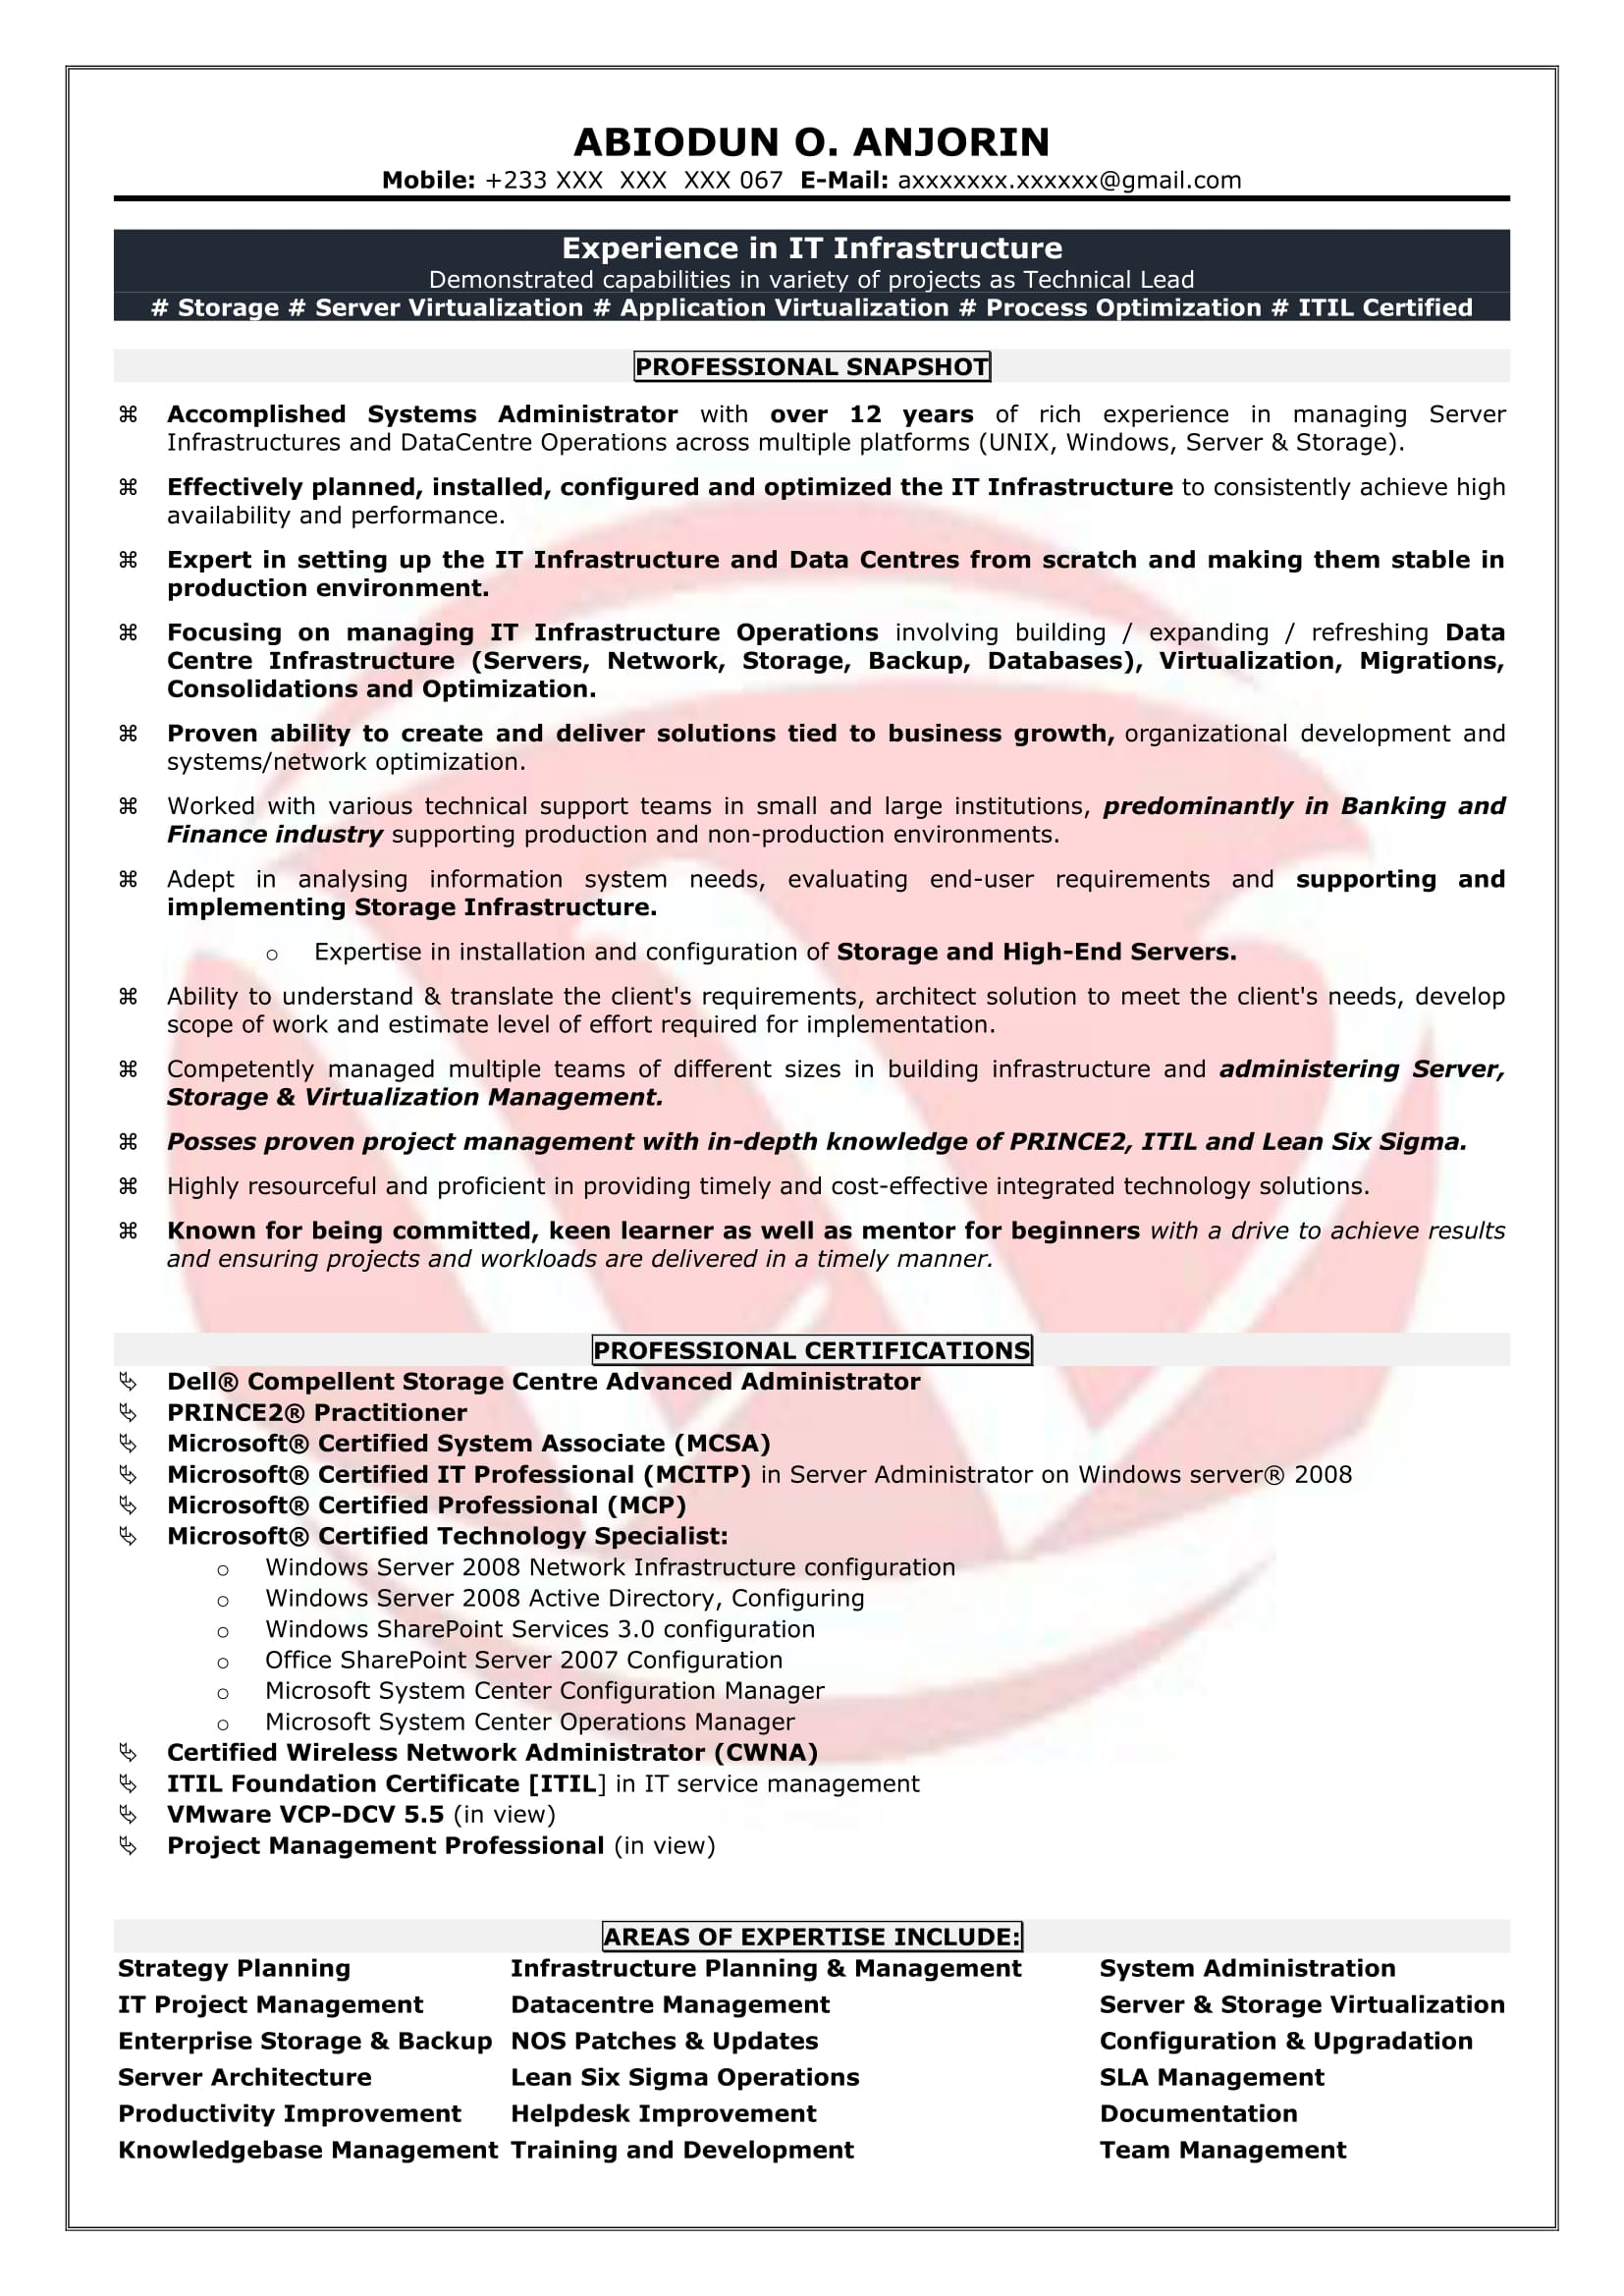 system administrator sample resumes resume format templates ats test free document Resume System Administrator Resume Sample Download